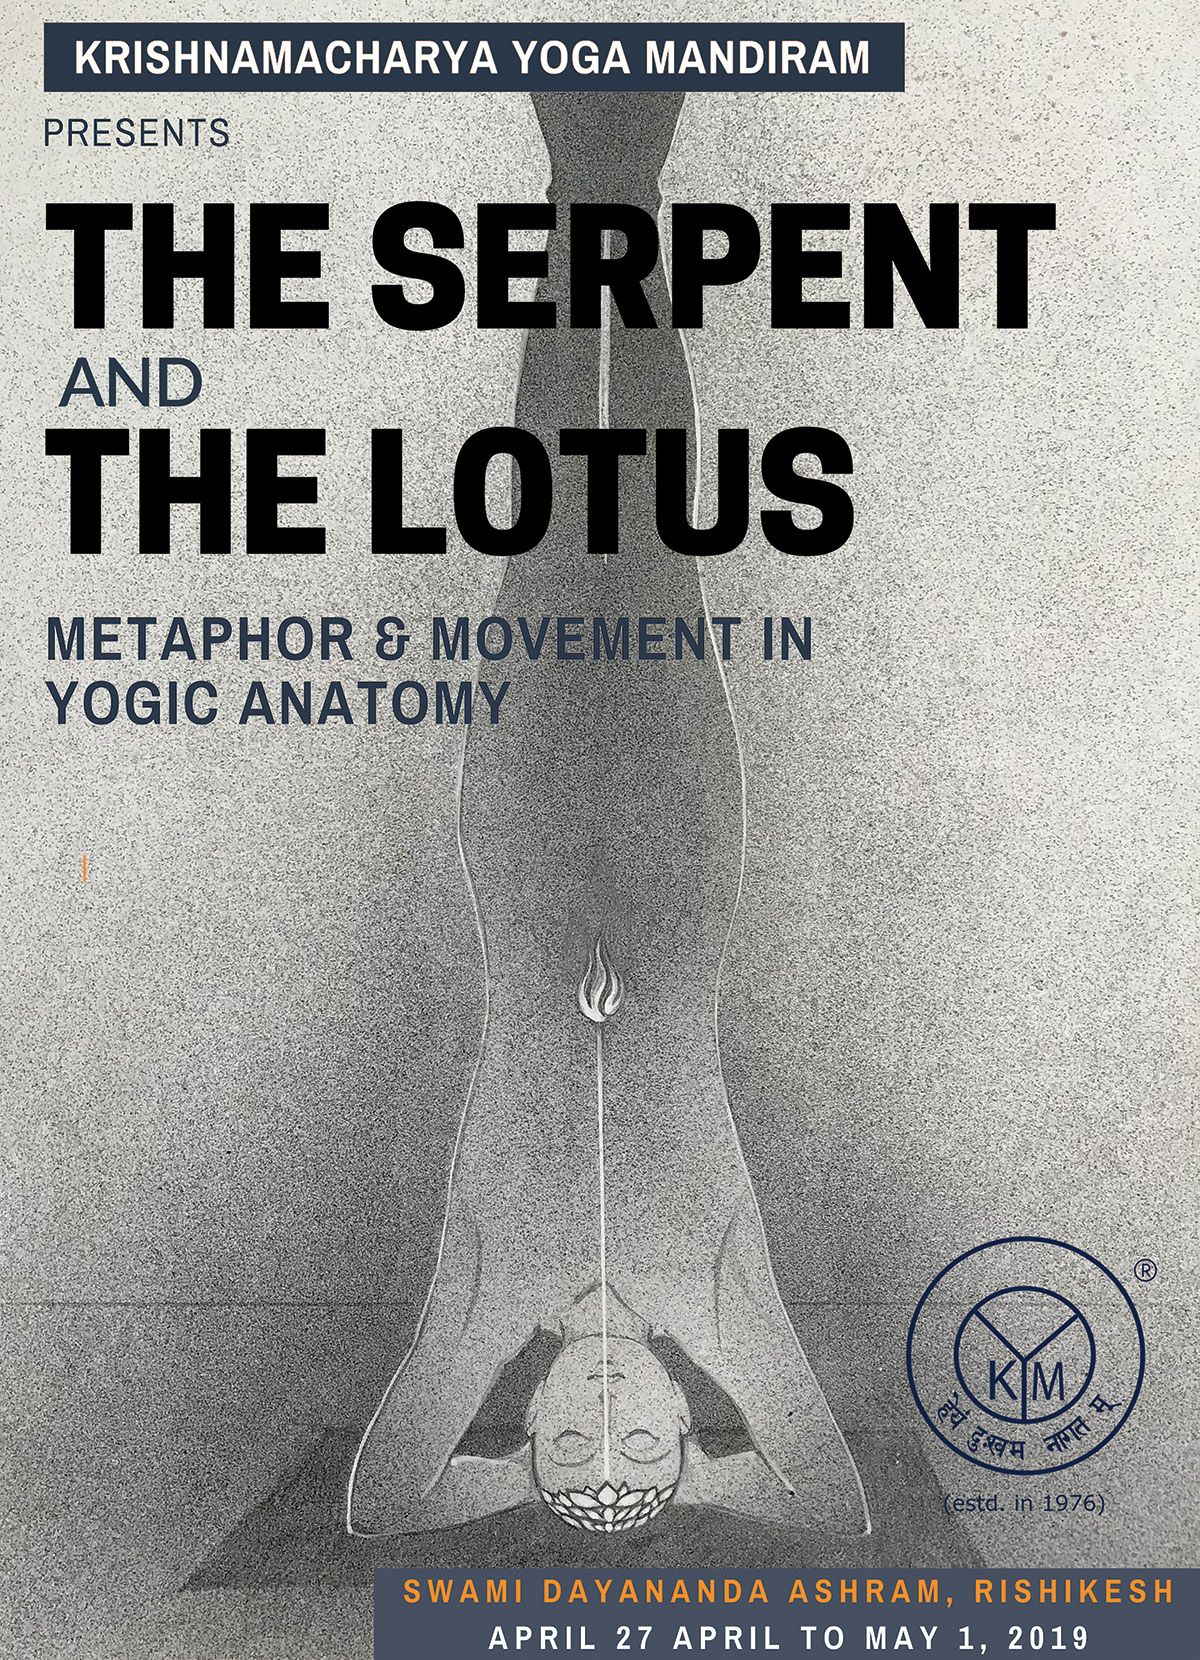 The Serpent and the Lotus | Metaphor & Movement in Yogic Anatomy